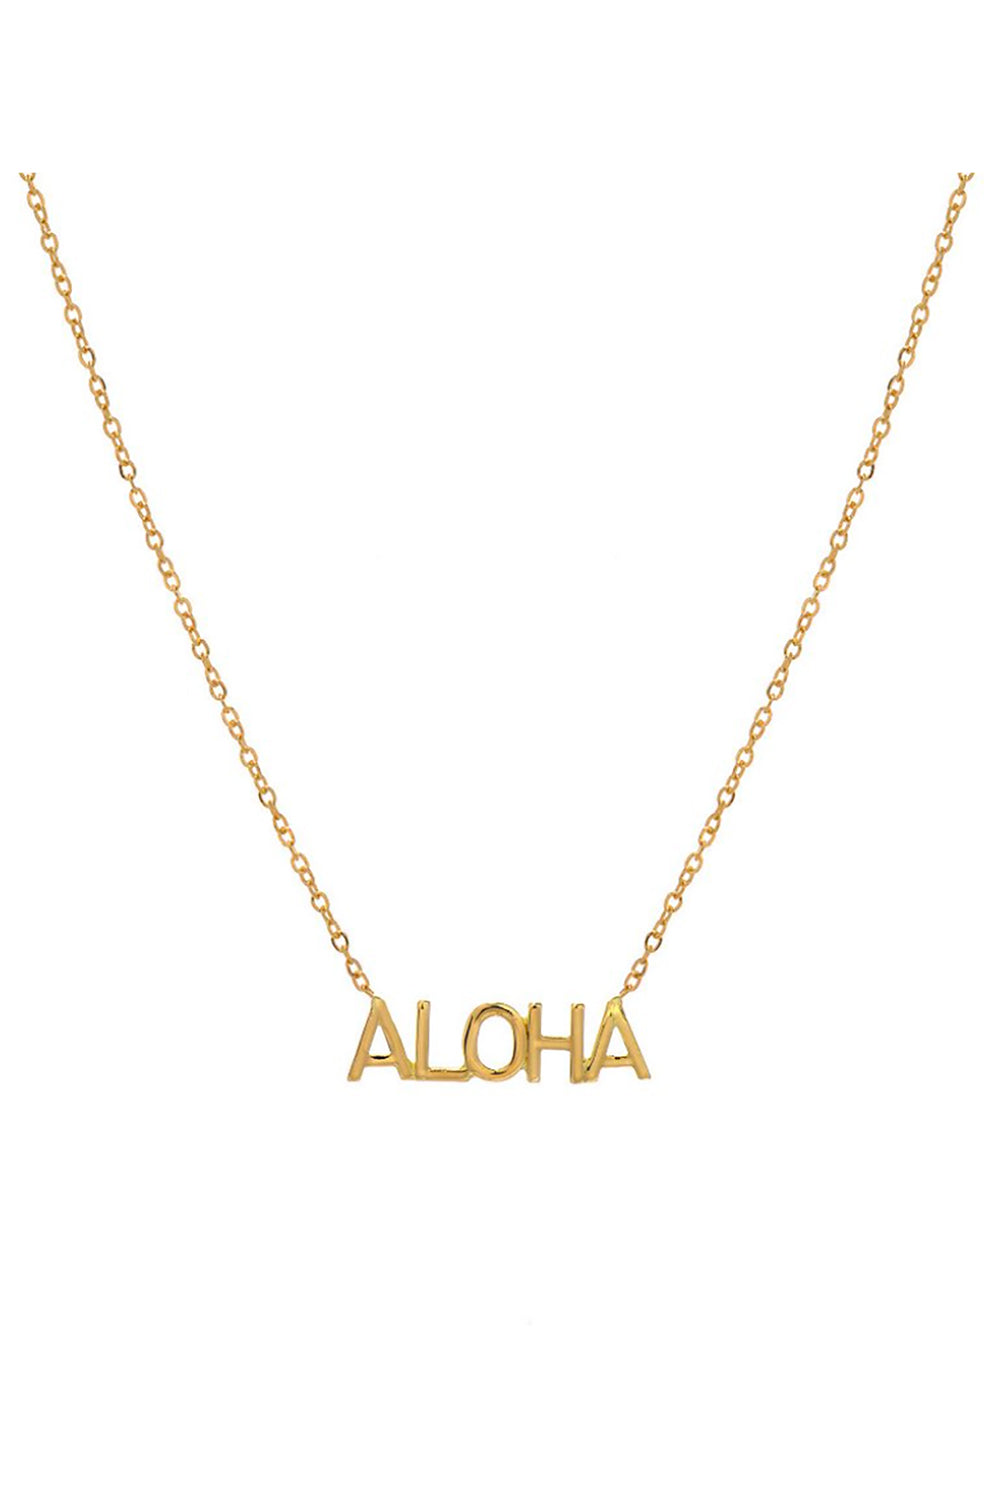 BYCHARI ALOHA Necklace in Gold Fill